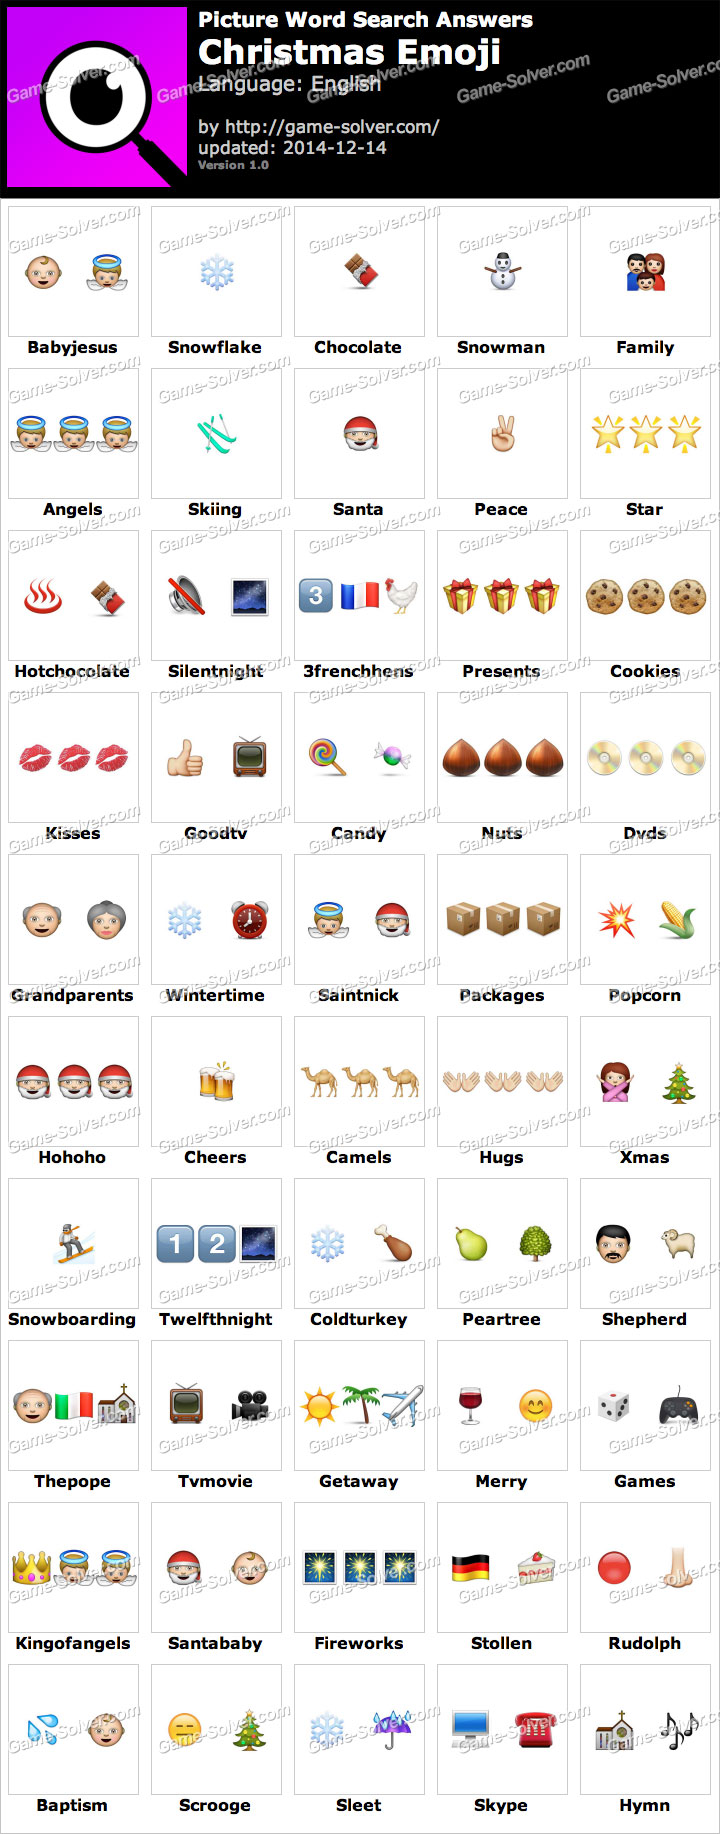 100 Pics Christmas Emoji.Picture Word Search Christmas Emoji Answers Game Solver